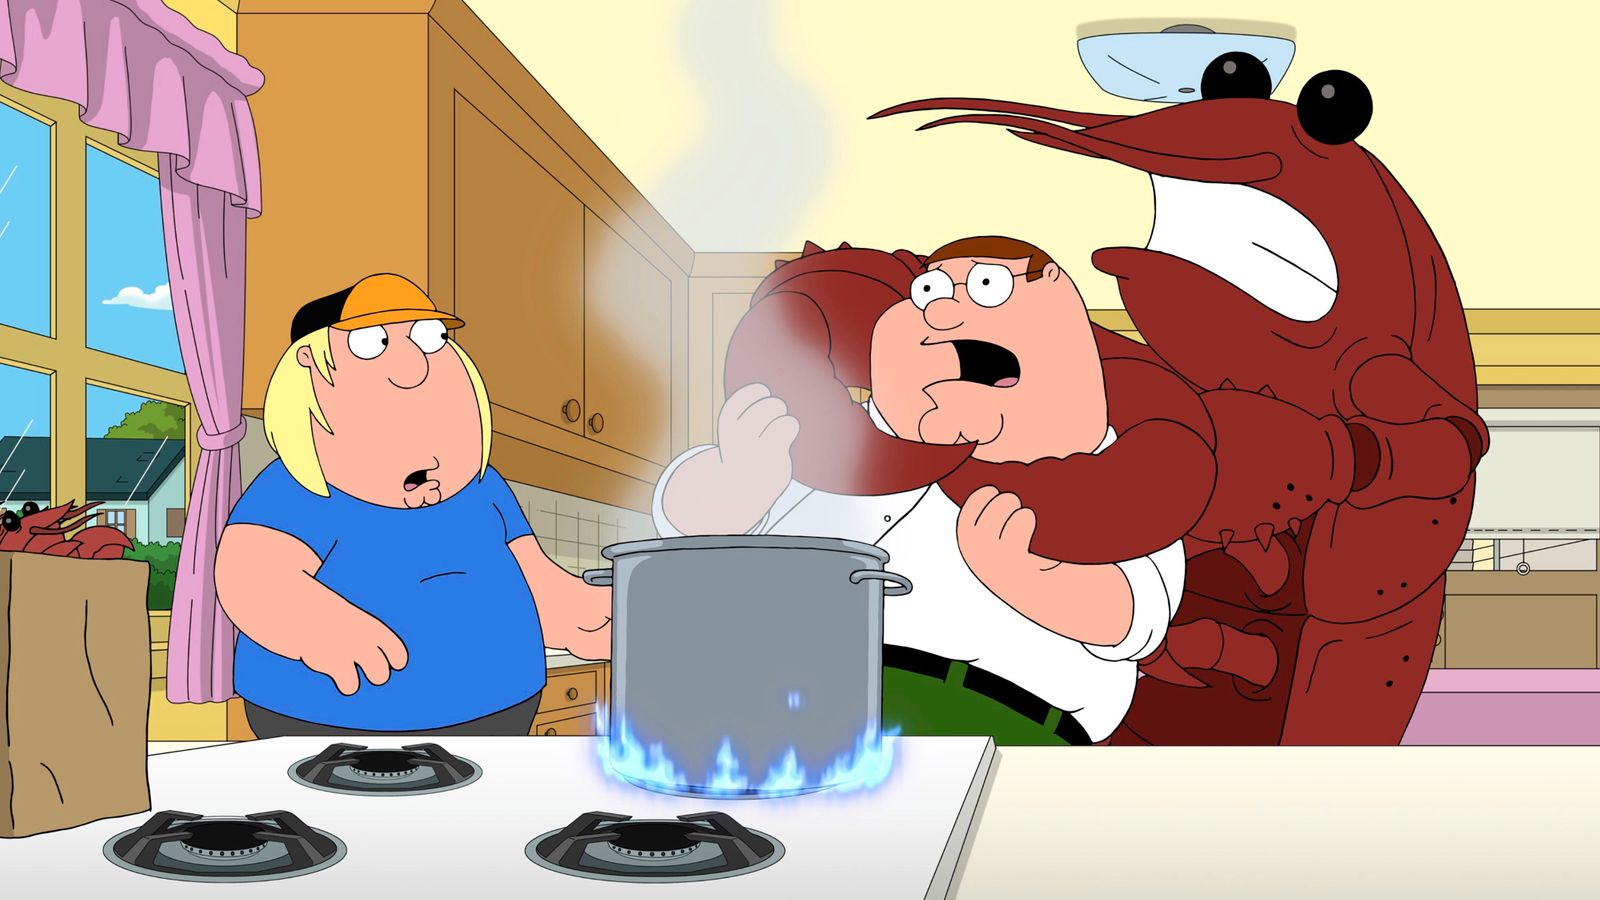 FAMILY GUY, from left: Chris Griffin (voice: Seth Green)...